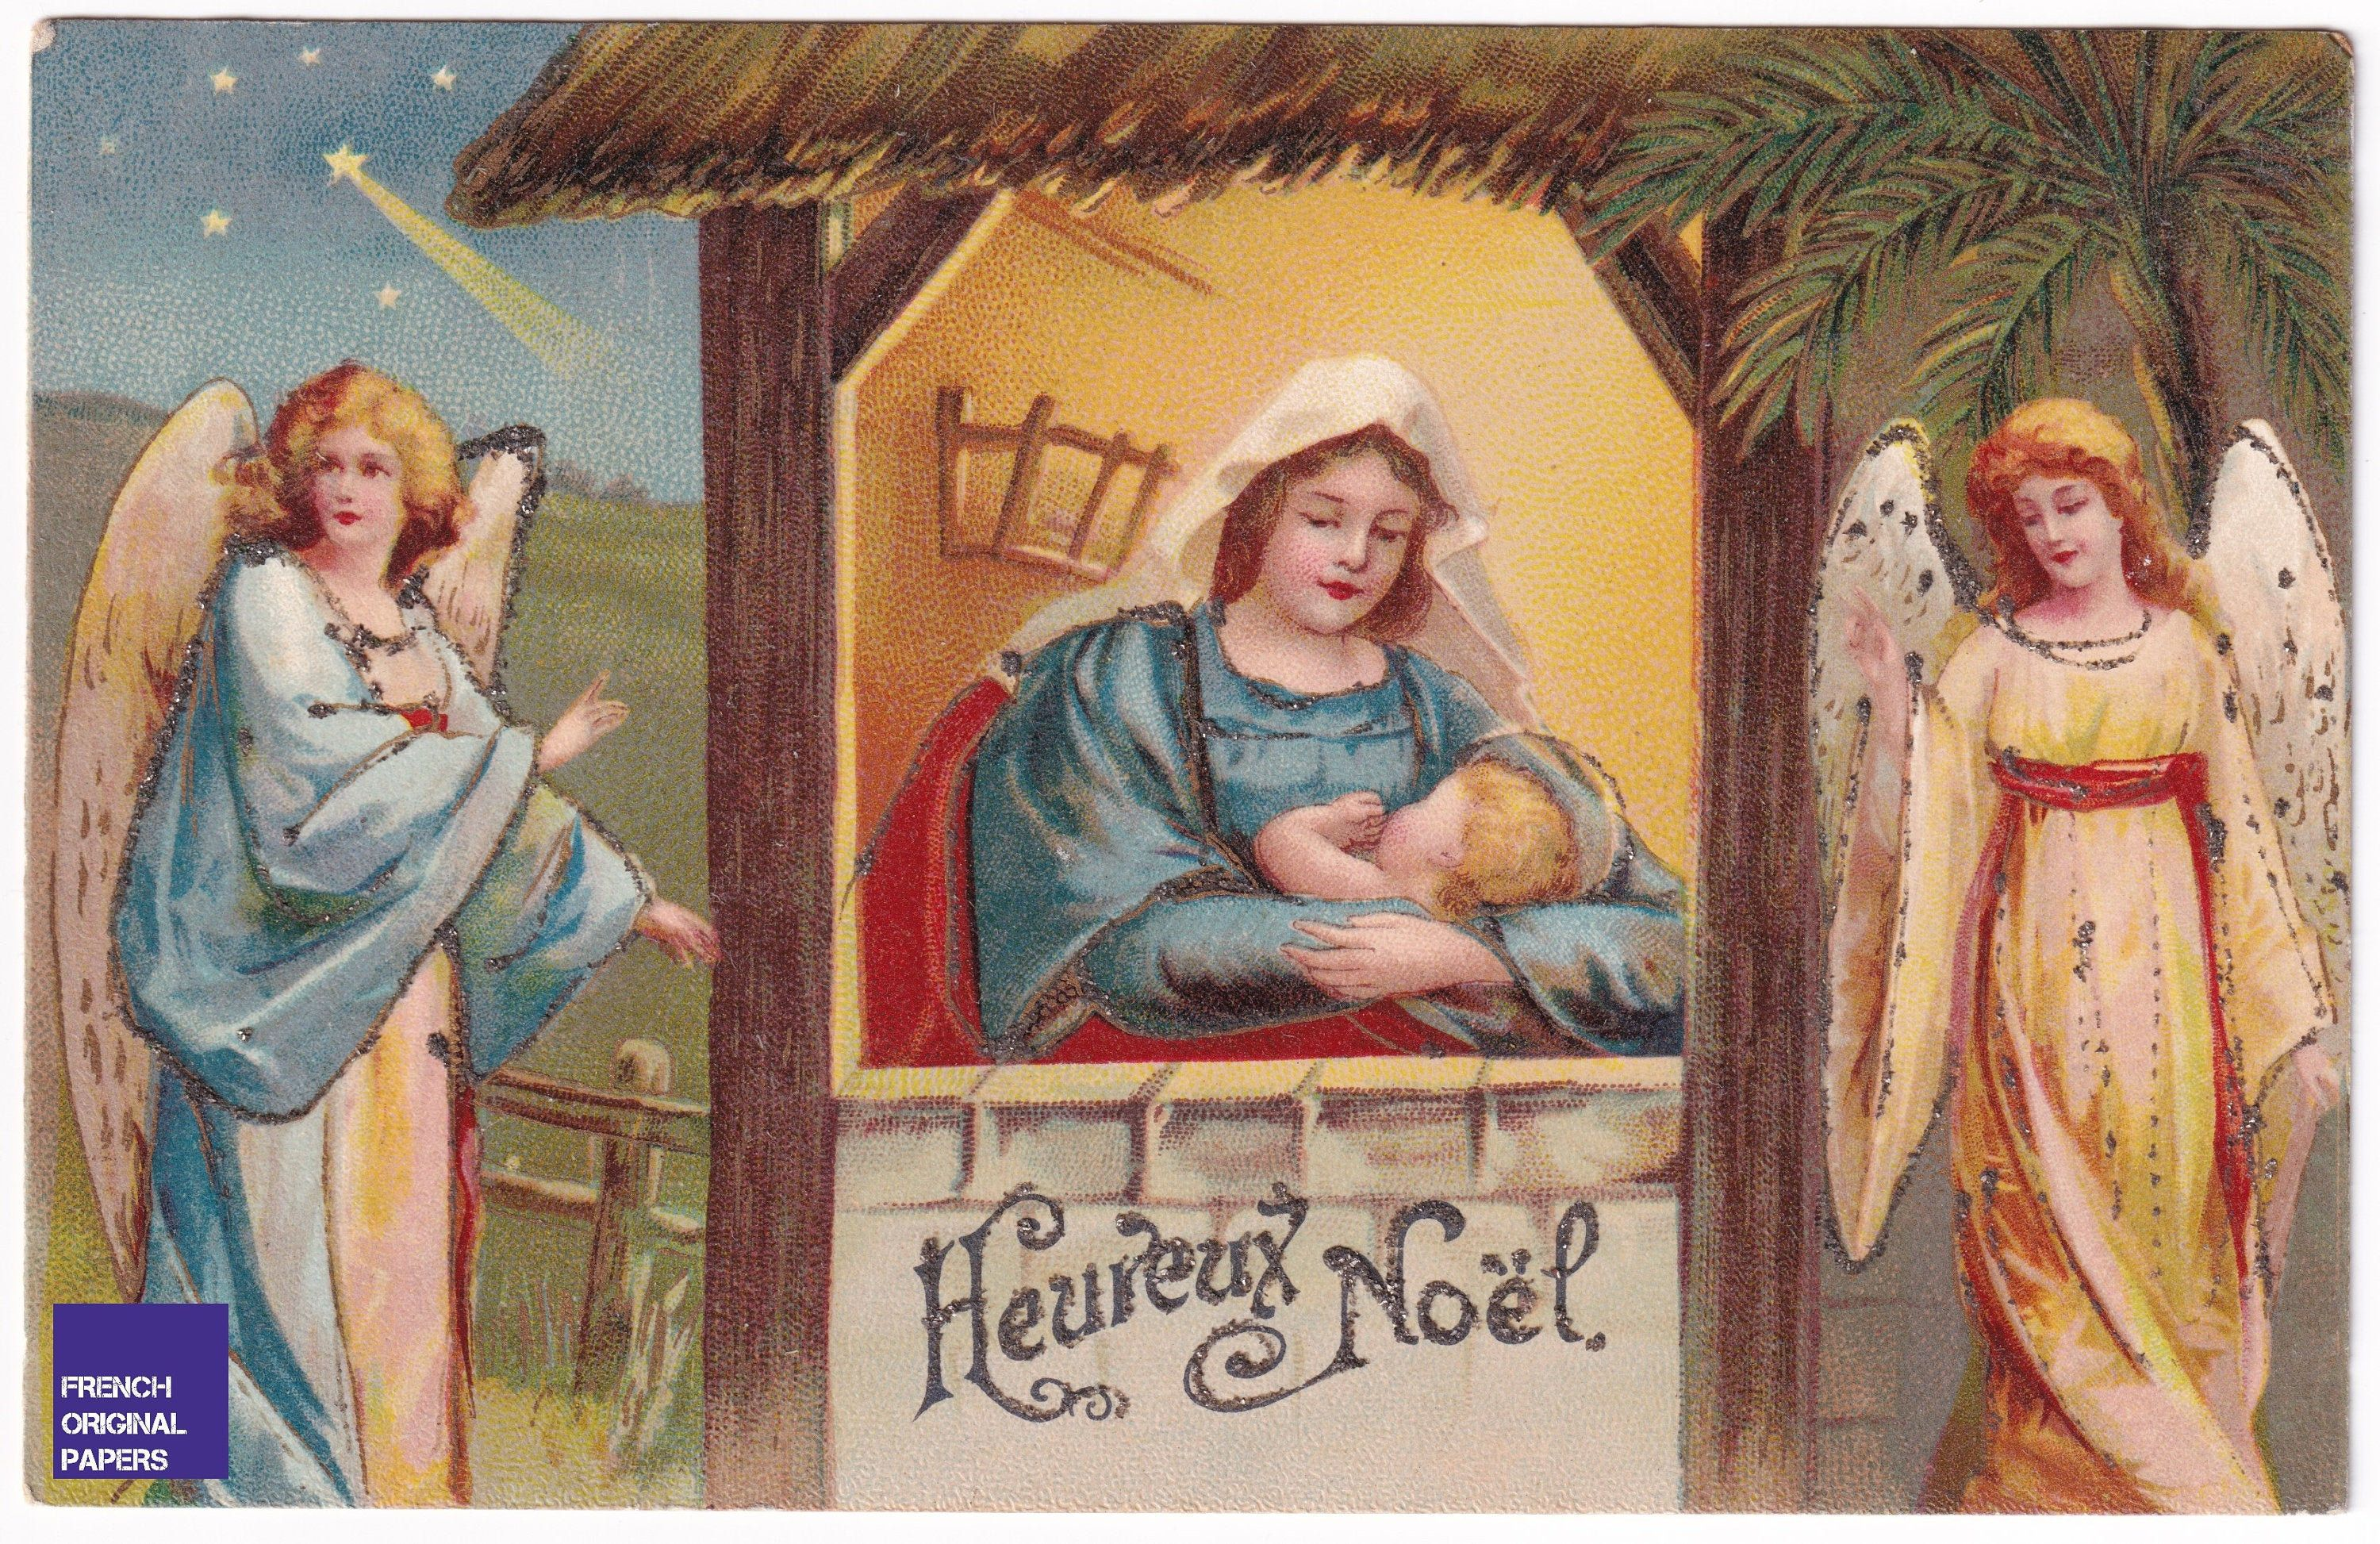 Magnificent Illustrated Antique Postcard 1904 Merry Christmas Vintage French Greeting Card Jesus Angel Baby Child Birth Graphism Ephemera In 2020 Merry Christmas Vintage French Greetings Postcard